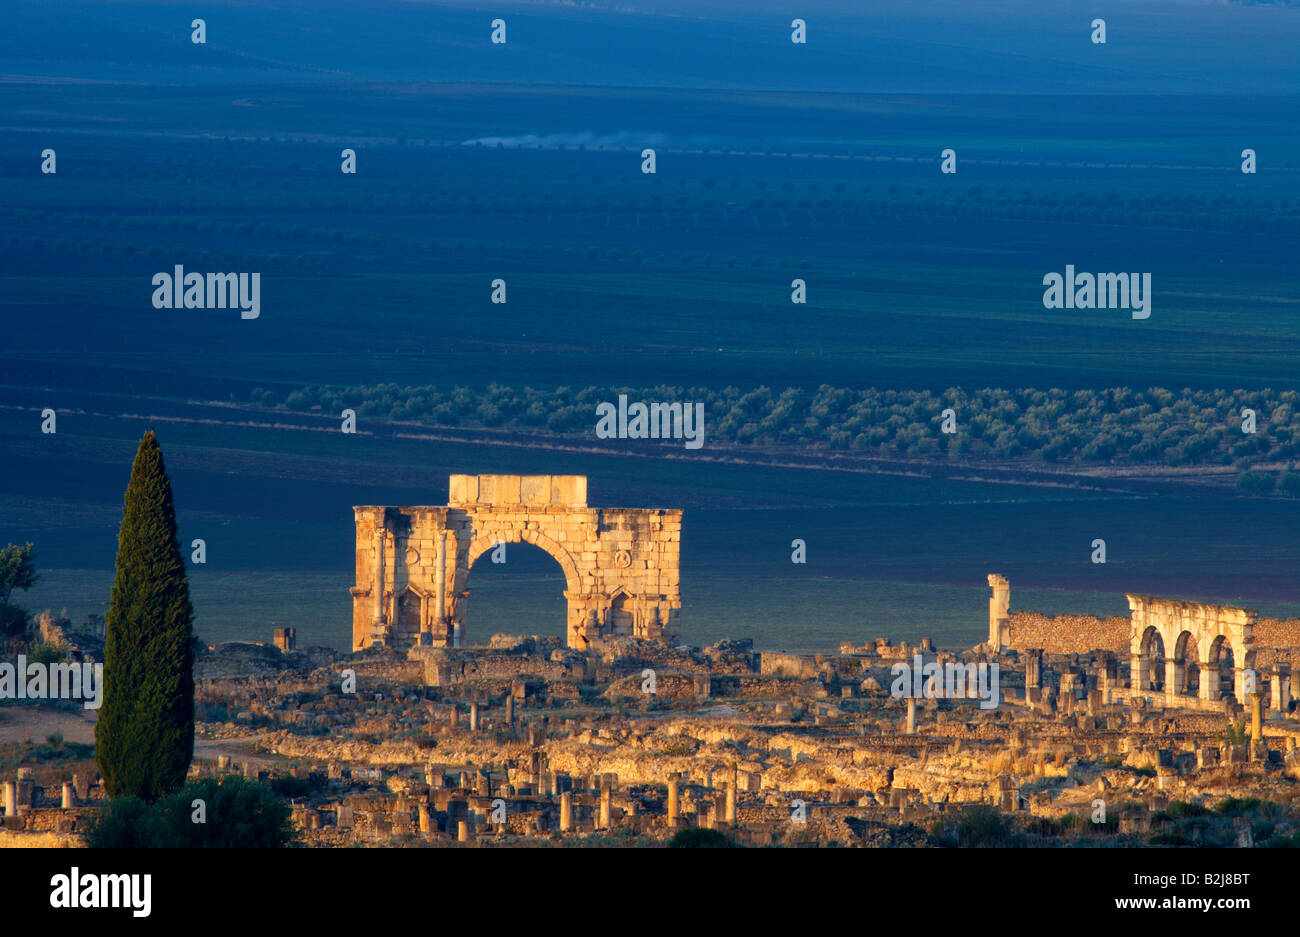 the Triumphal Arch in the ancient Roman ruins at Volubilis, Morocco - Stock Image